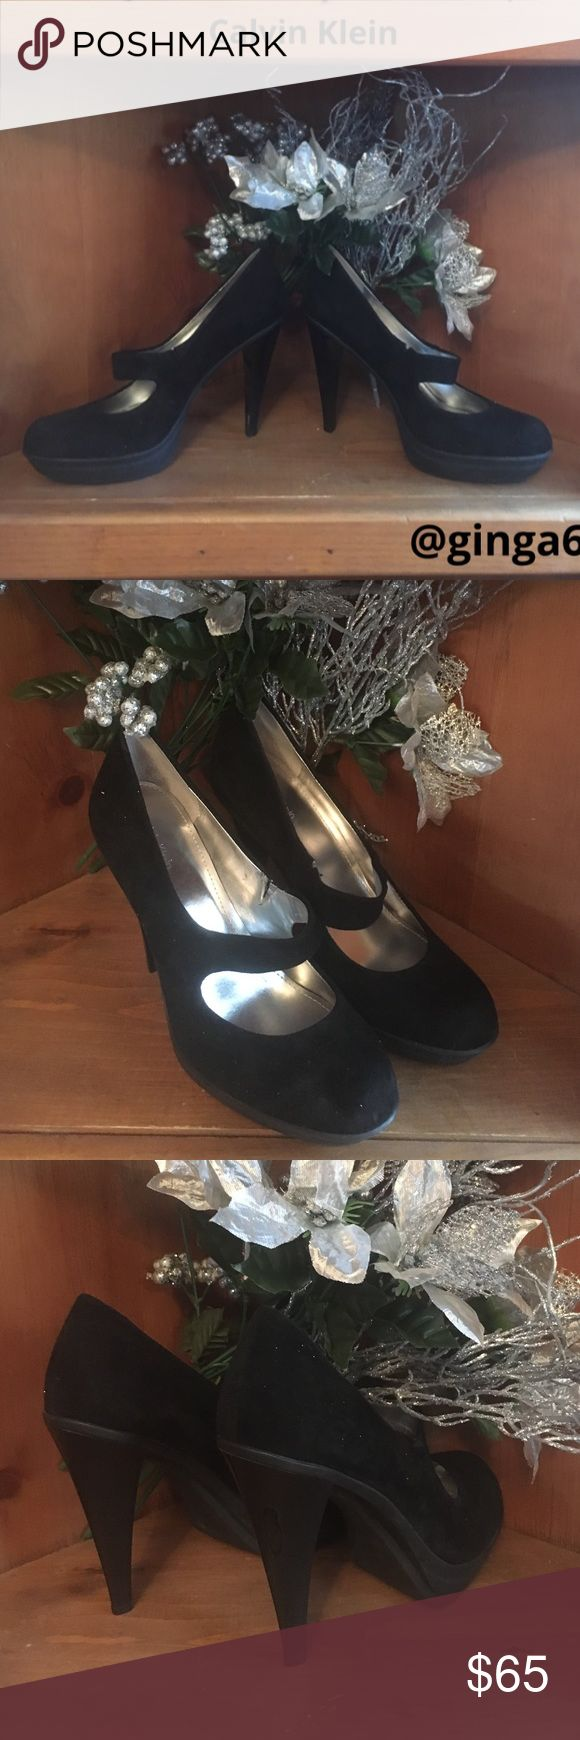 Calvin Klein suede black sexy pump💋 Calvin Klein 4.5 inch black suede heels👠 Classic chic & sexy. Worn one time in great condition , no scuffing or wear , grab THEESE for the holidays💄👠 Calvin Klein Shoes Heels